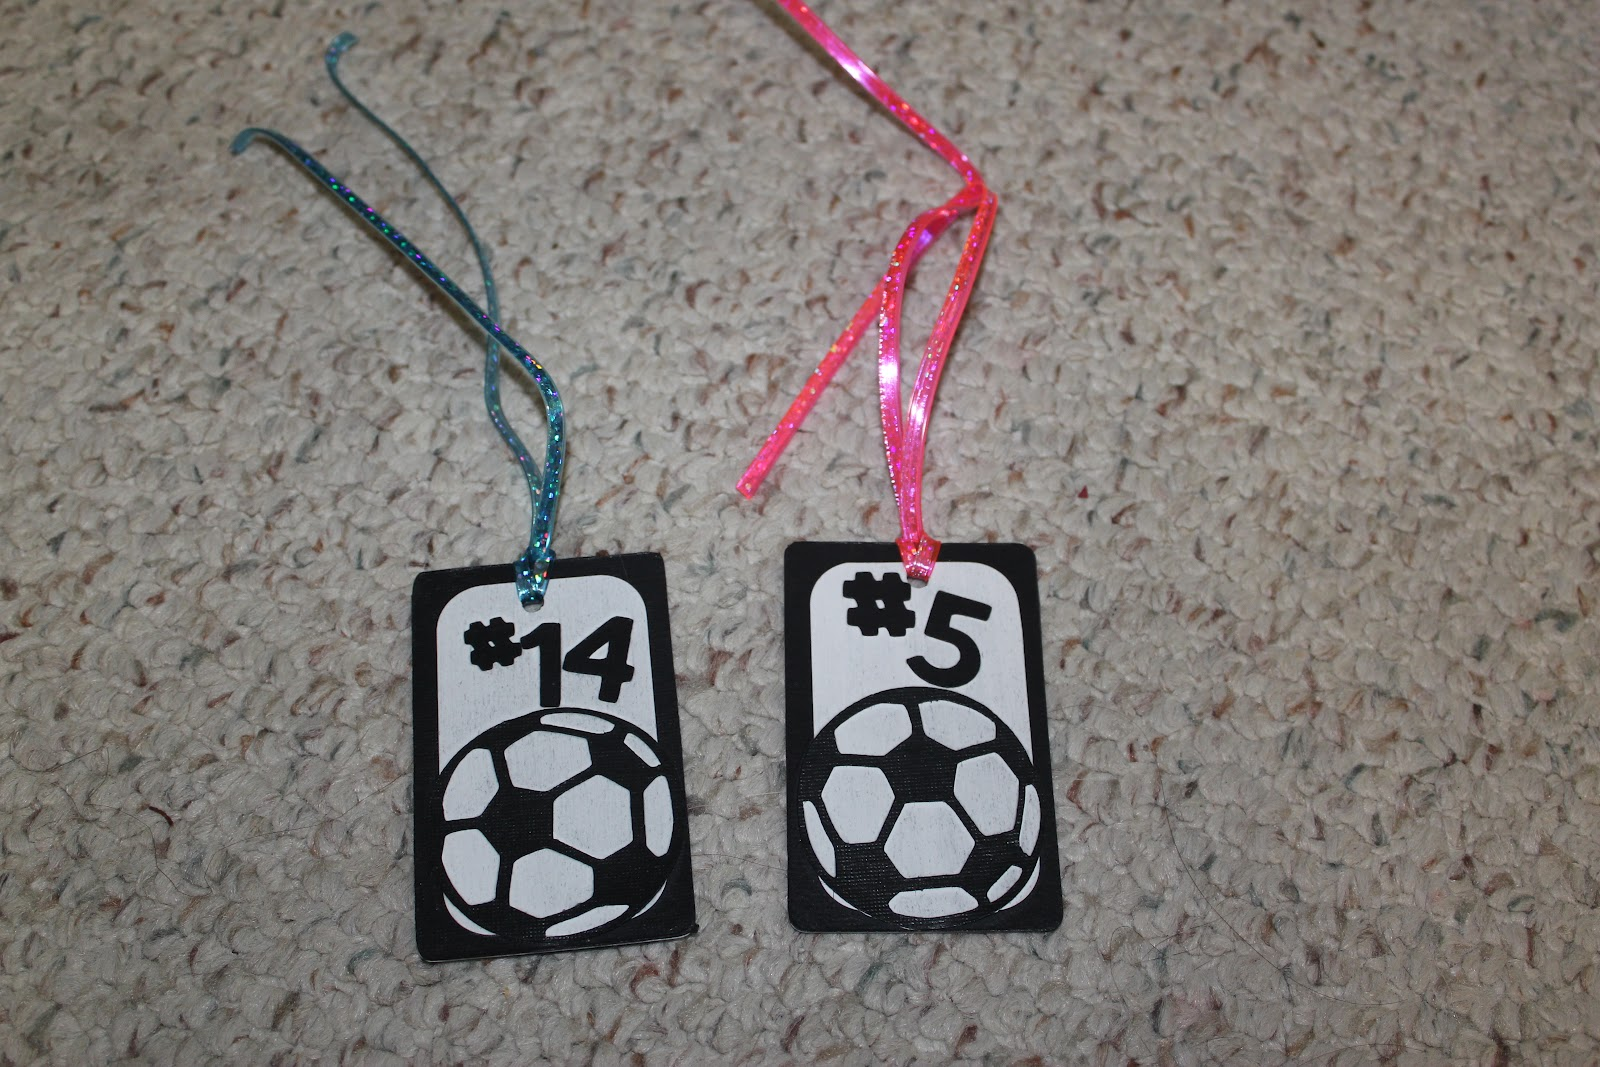 I Took Old Gift Cards We Had Laying Around The House And Covered Them With Black Card Stock Mod Pauge Then Cut Out Their Number Soccer Ball